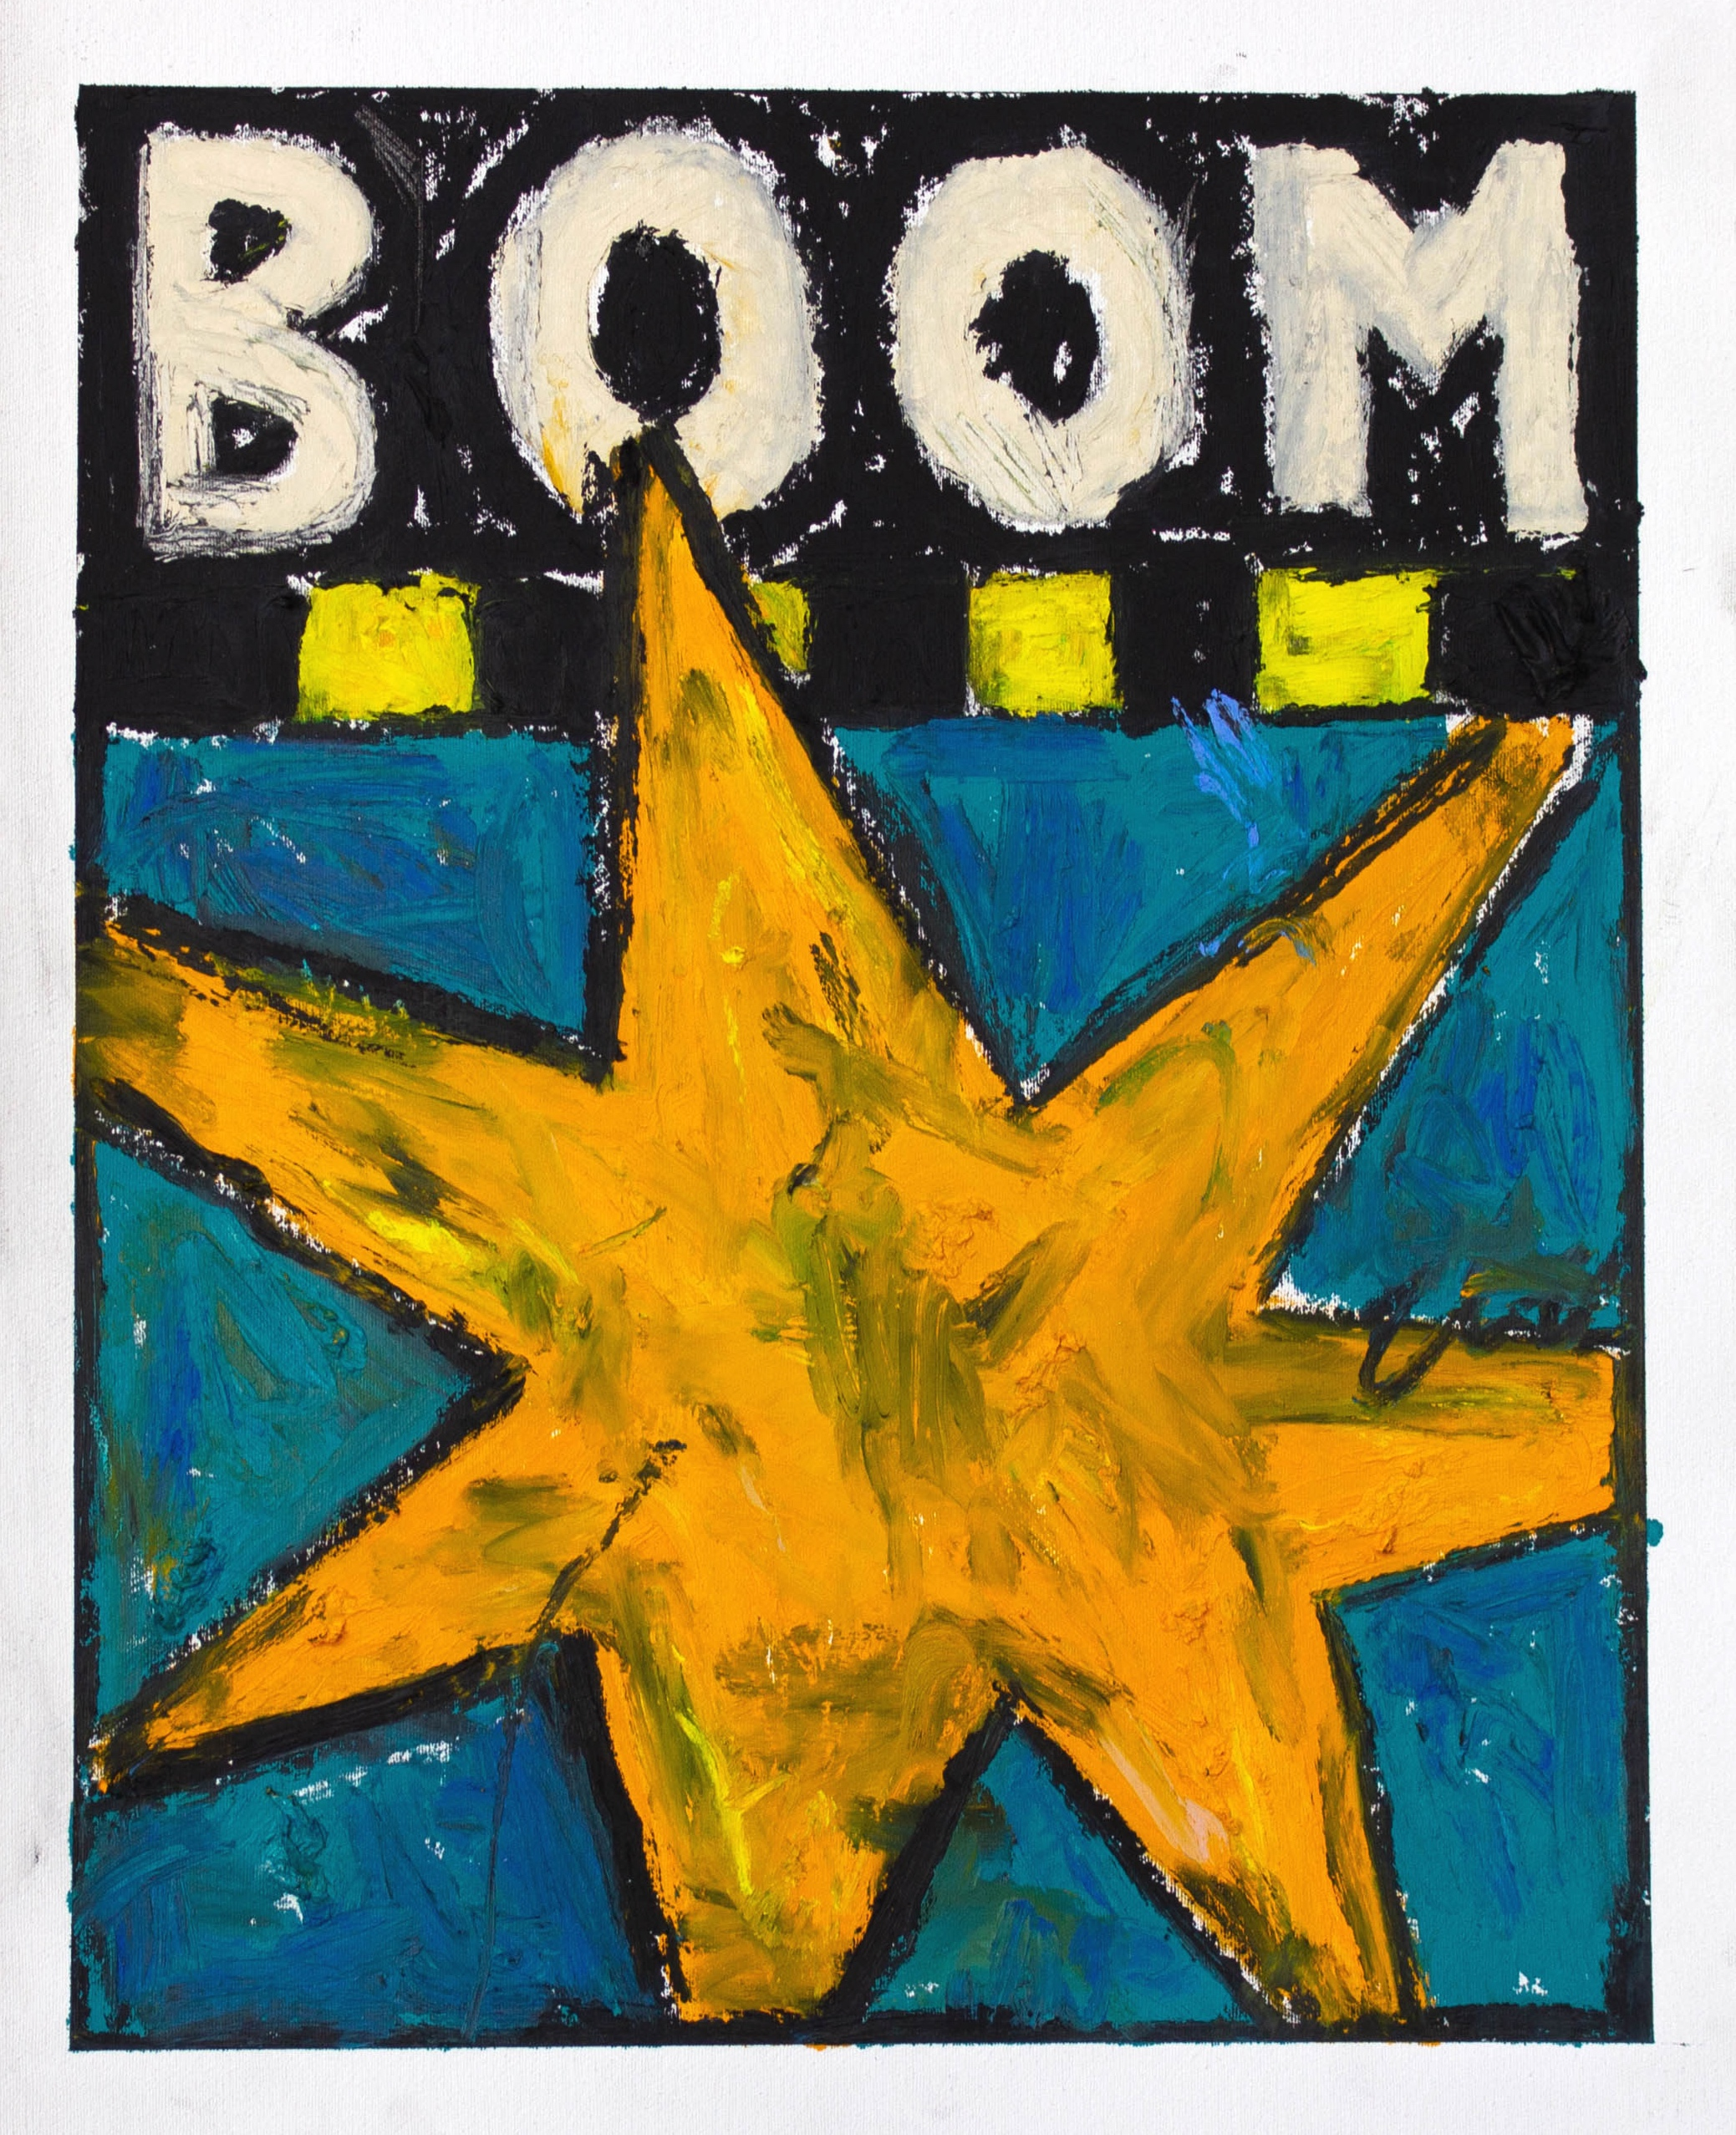 """""""BOOM"""" / 2019 OILSTICK ON UNSTRETCHED CANVAS FRAMED IN WHITE WITH ARTGLASS AR70 42 X 51 CM 4900 NOK"""